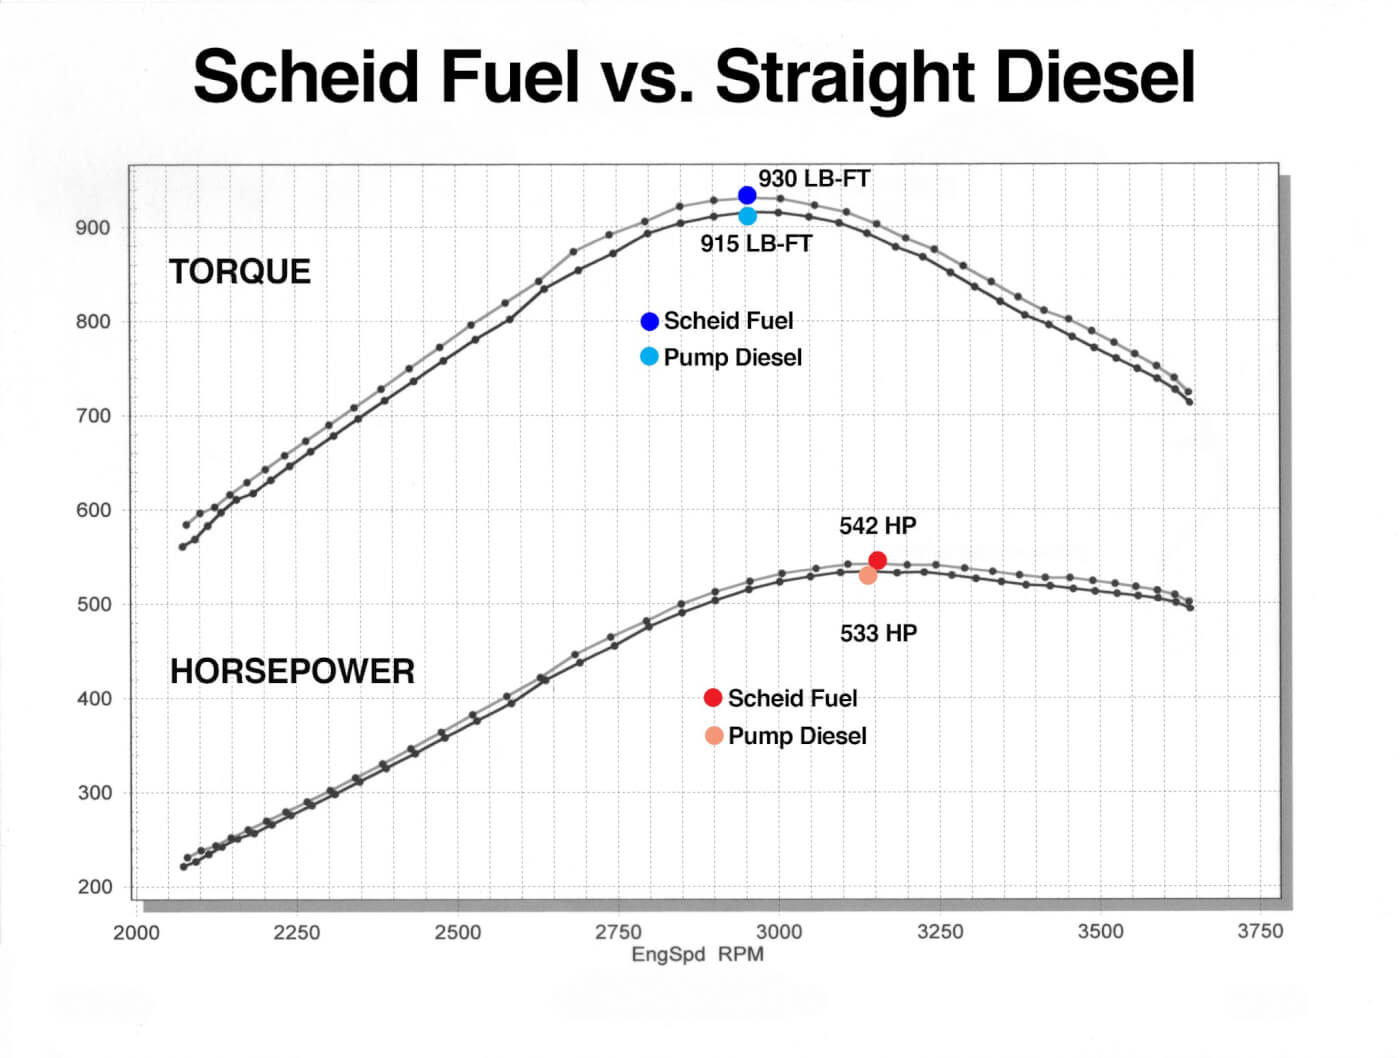 While some might say a 9 hp and 15 lb-ft gain is negligible, it can be the difference between winning and losing. Notice how the horsepower and torque curves mirror each other. These gains were realized across the entire rpm range, not for some brief moment in the truck's powerband.